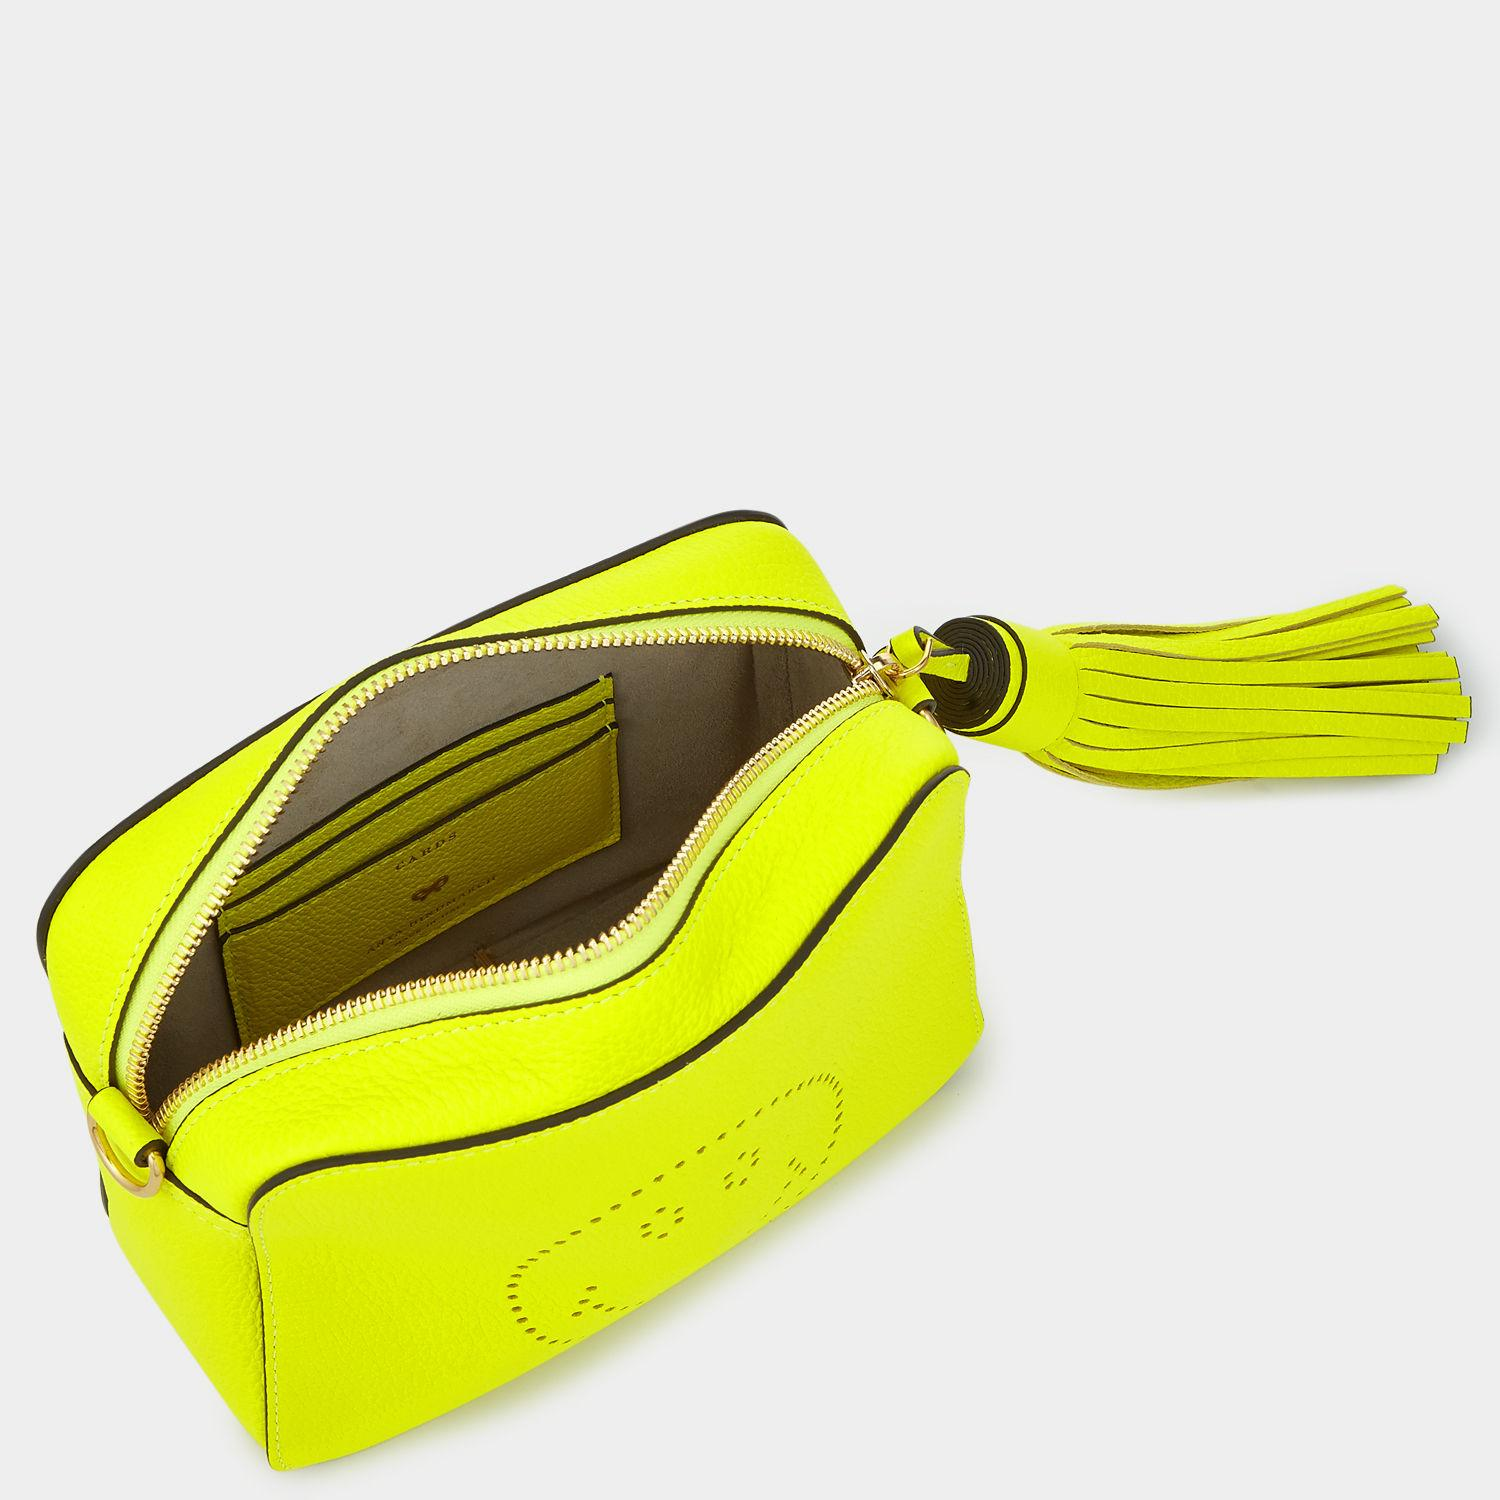 Anya Hindmarch Leather Smiley Face Cross-body Bag in Neon Yellow (Yellow)